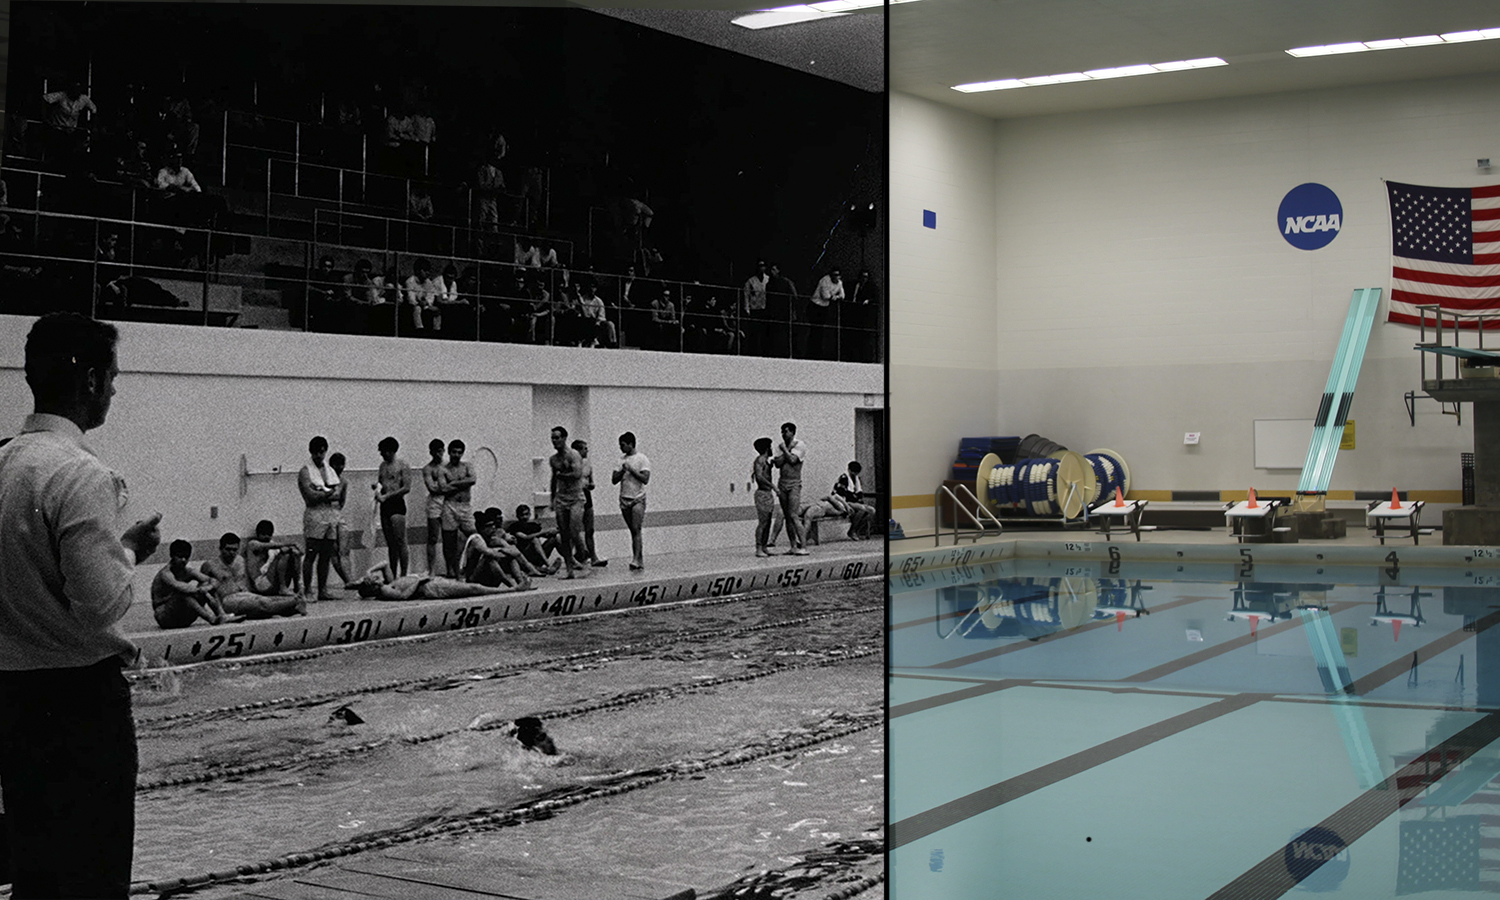 Constructed in 1965, Bristol Pool is now home to only the William Smith swim and dive team, with their coordinate team having been disbanded in the late 20th century.